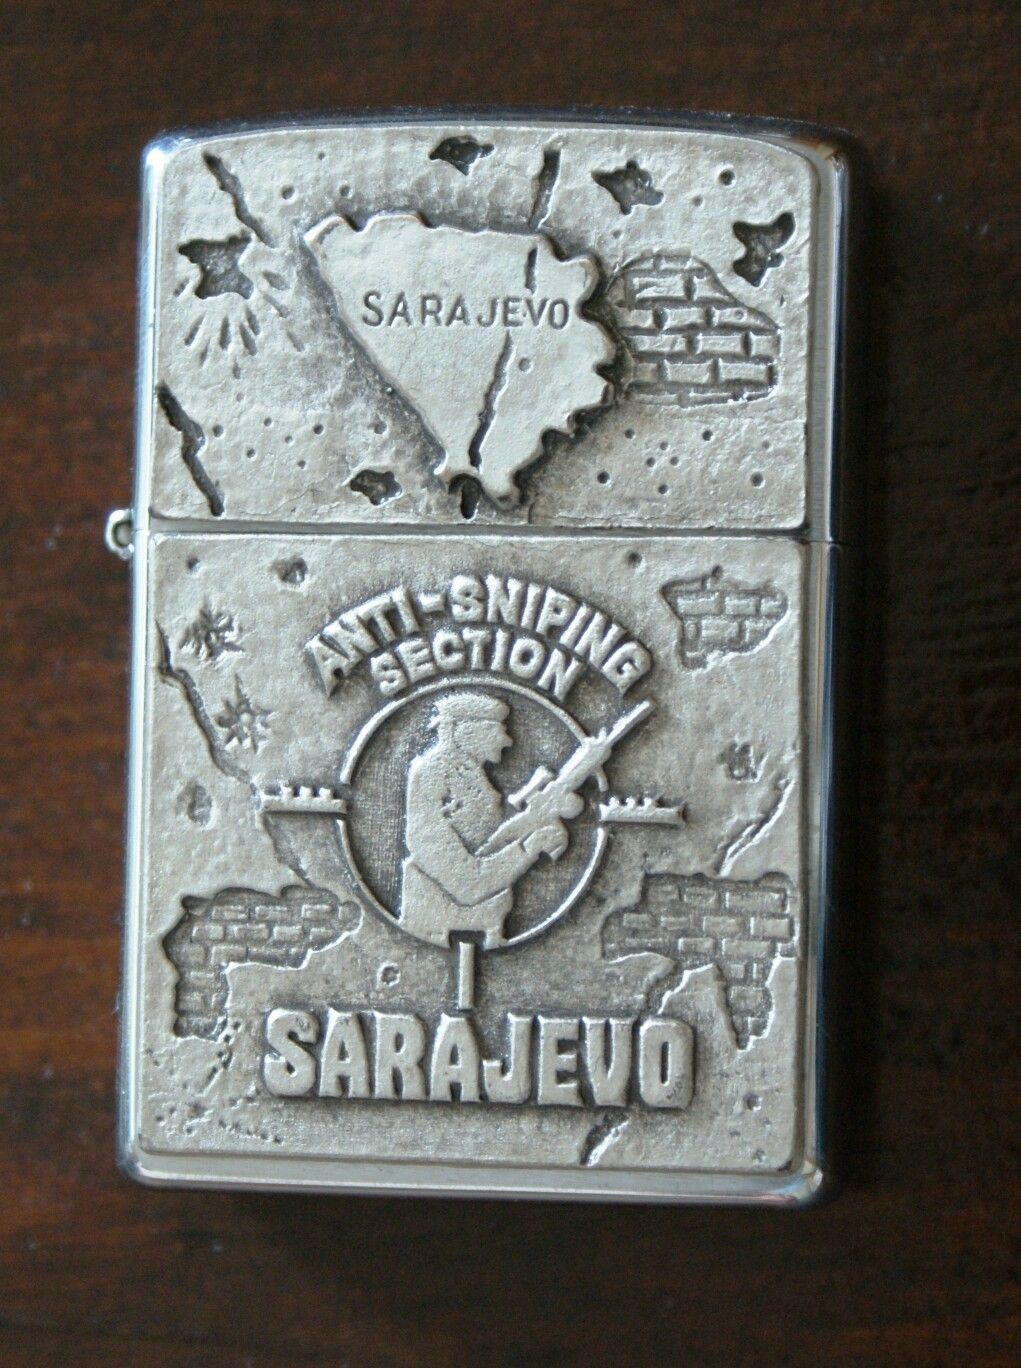 Zippo Anti Sniping Section Sarajevo Encendedor